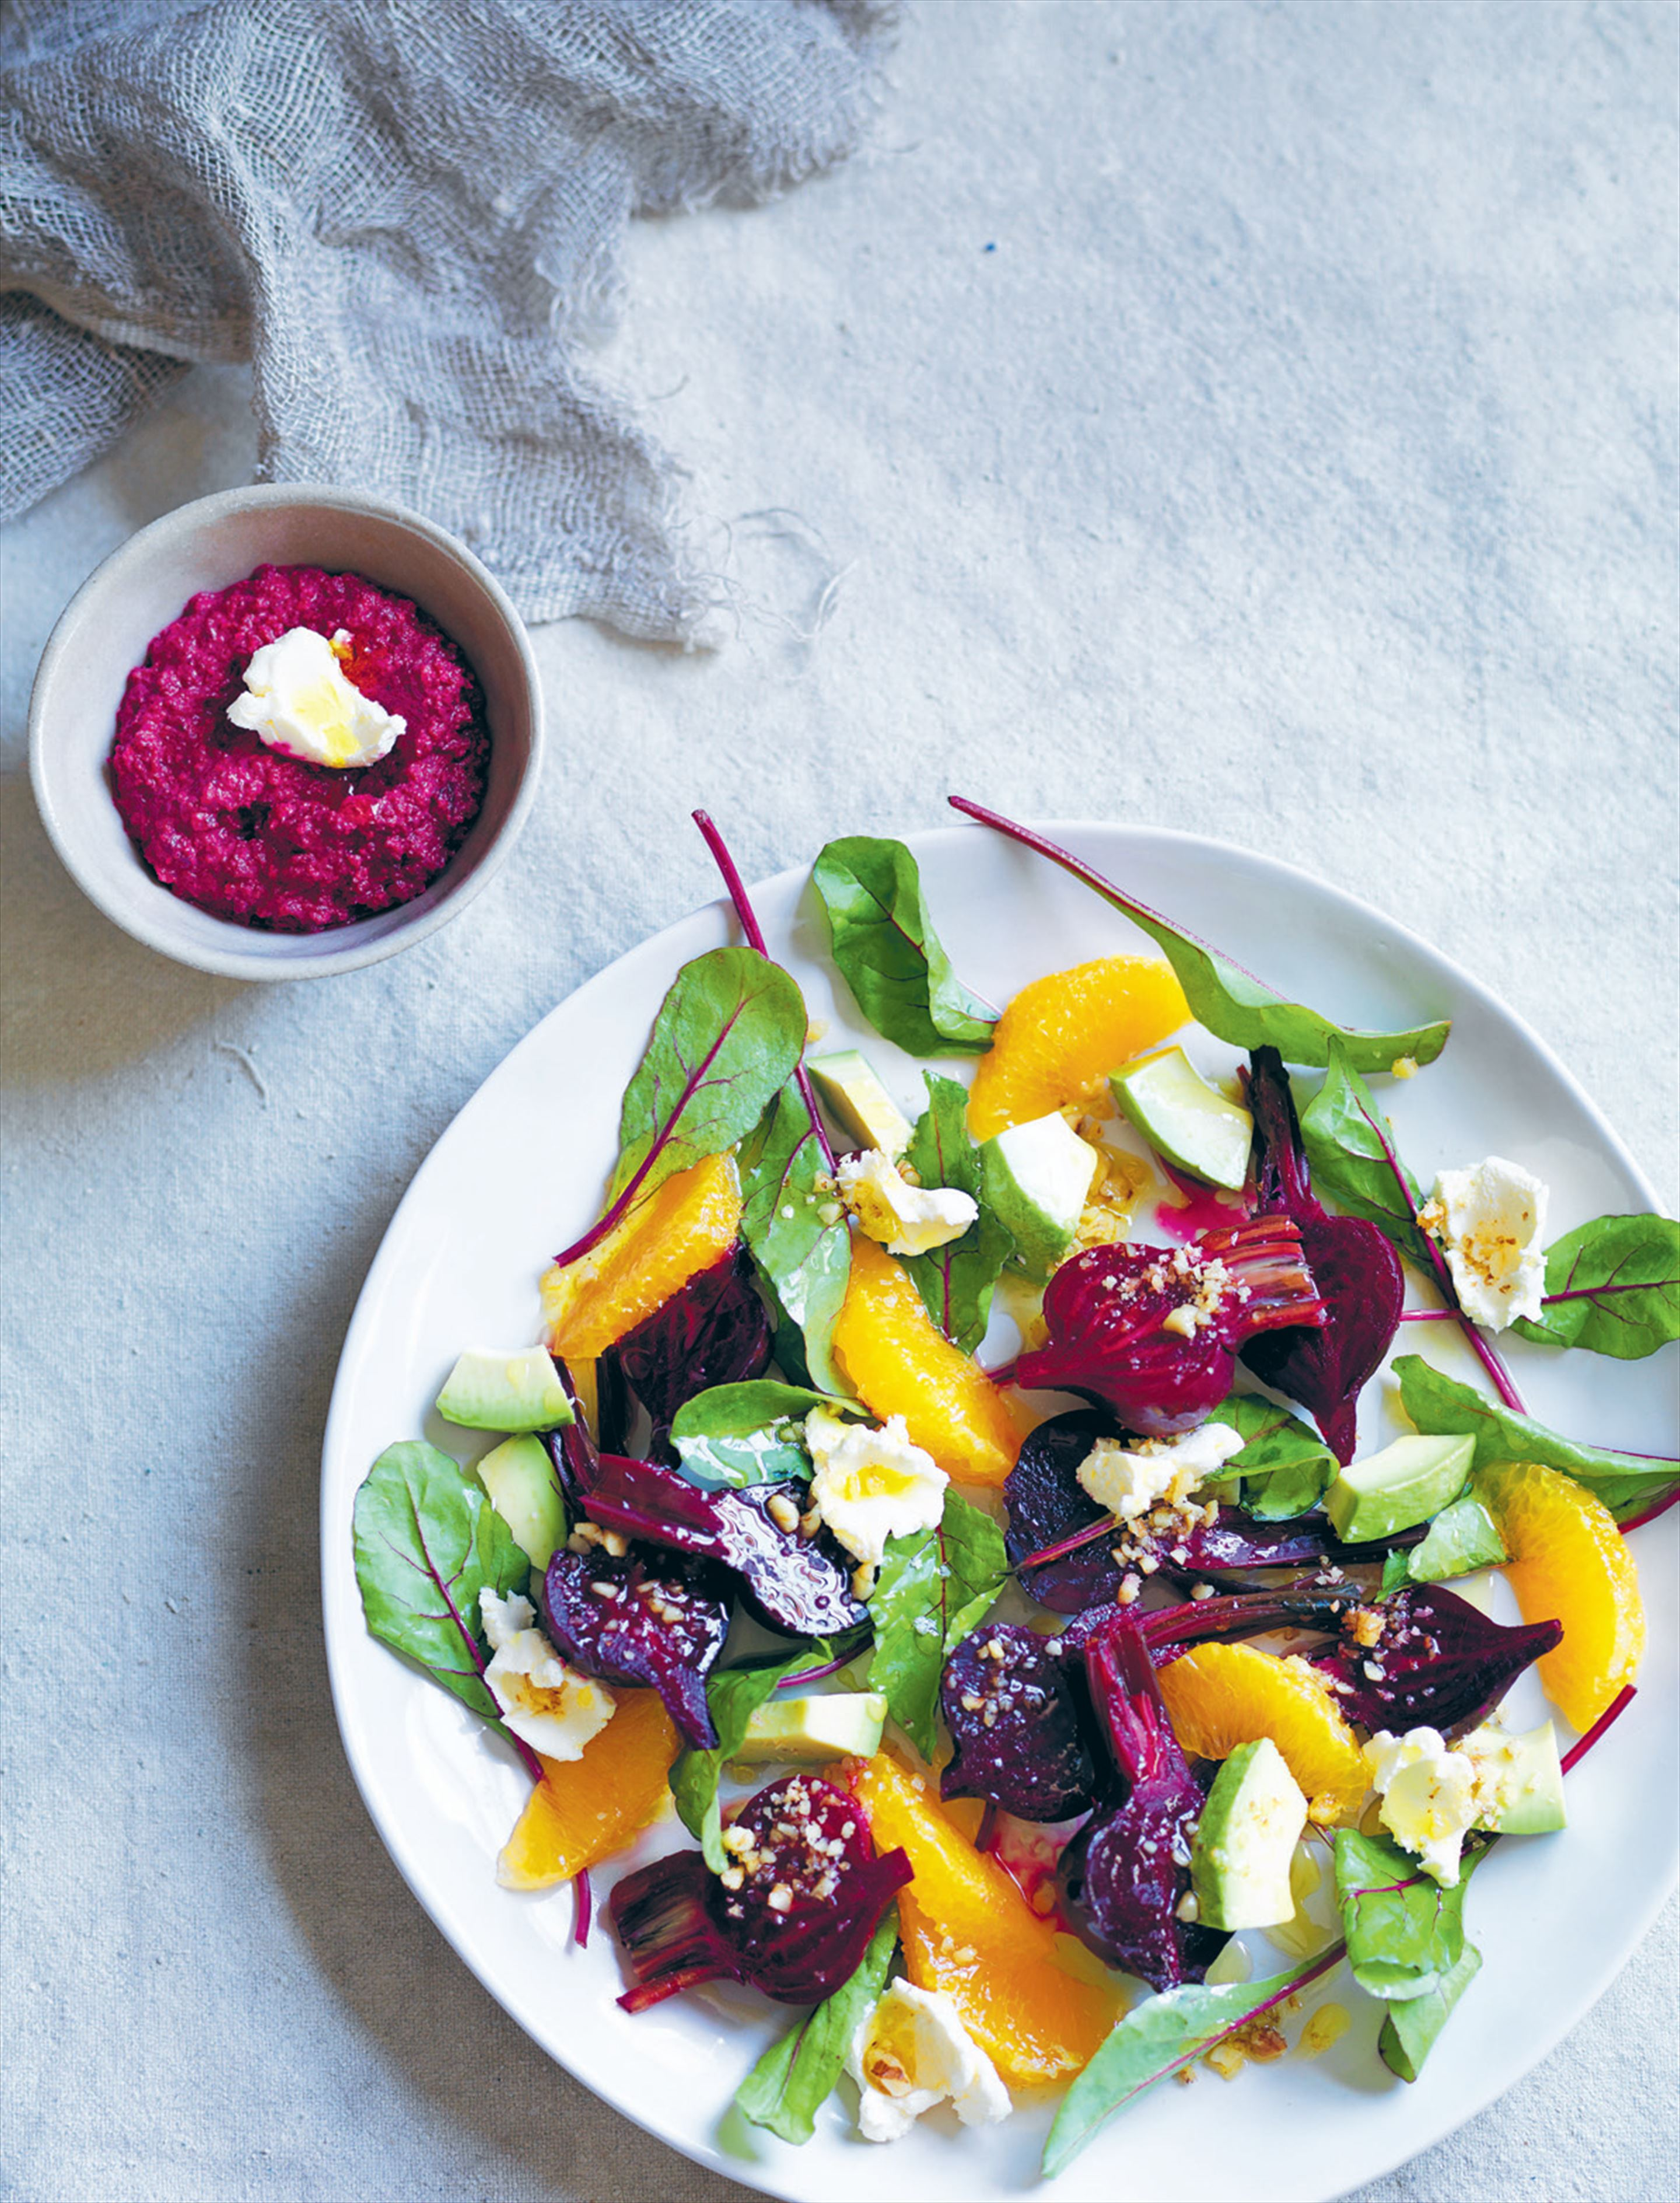 Baby beetroot salad with orange, avocado and walnuts